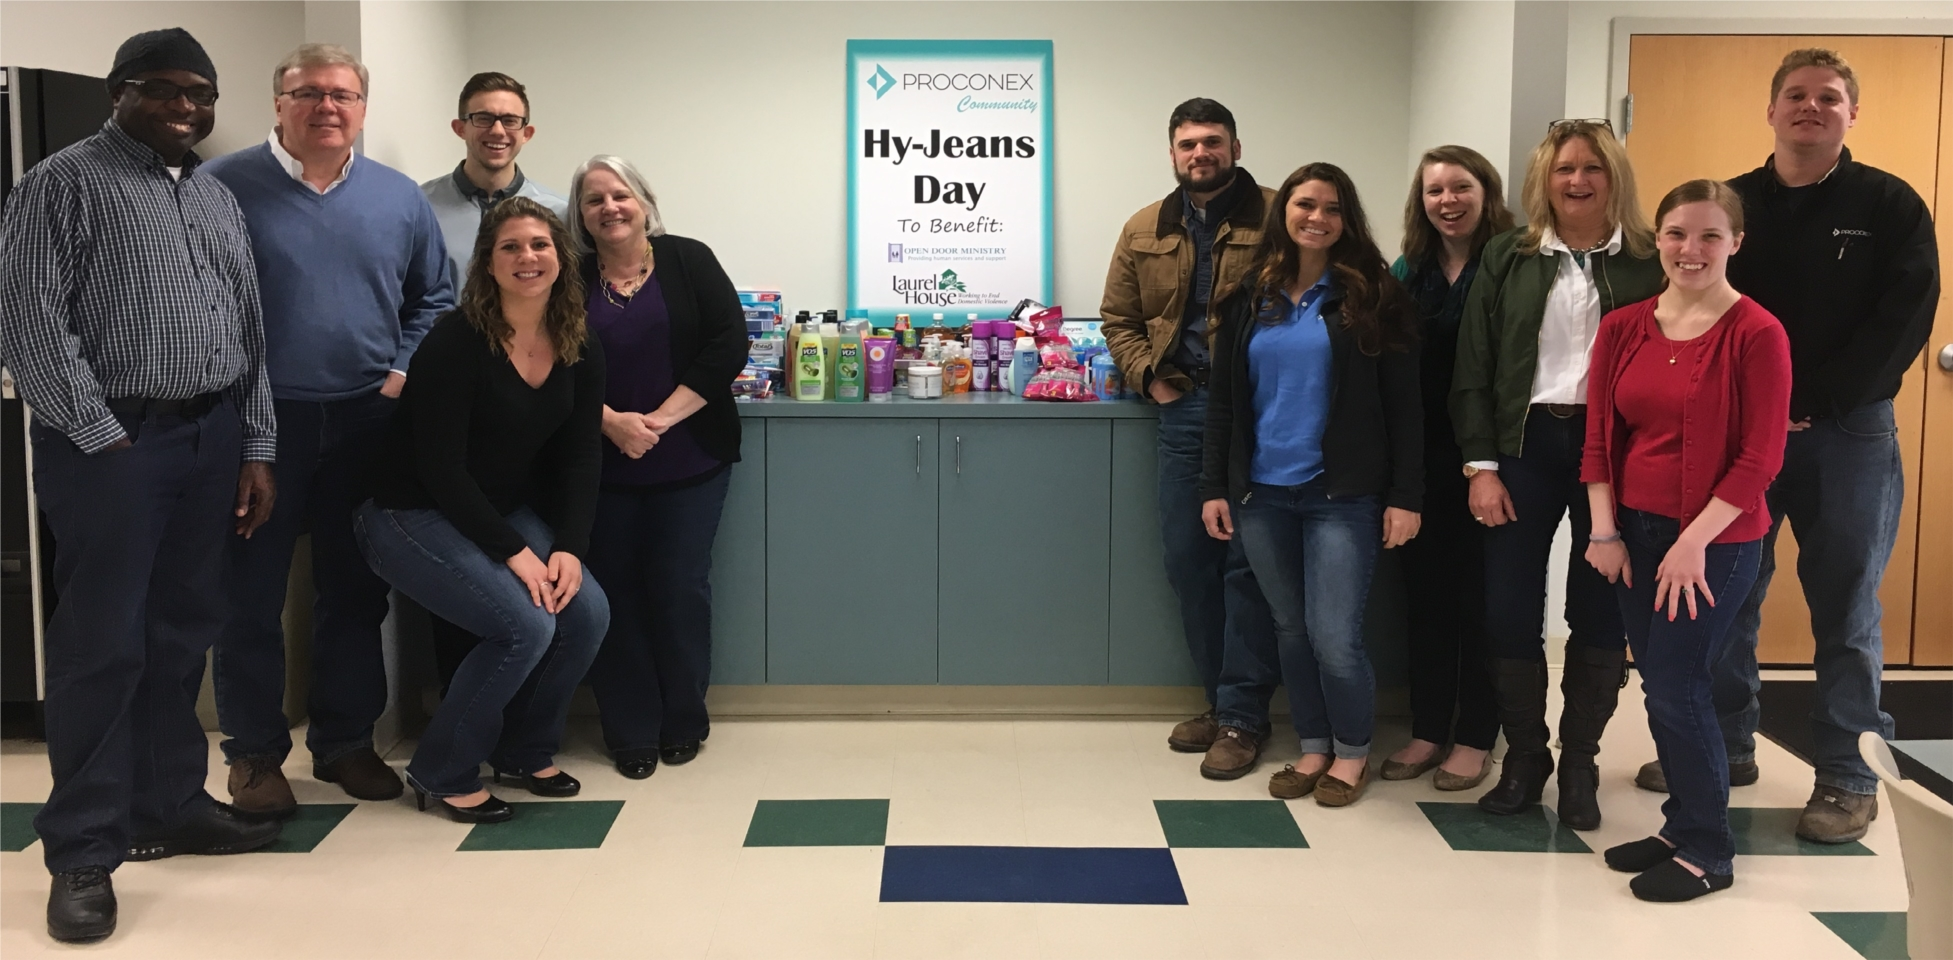 Proconex donates personal care products to Laurel House in Norristown and The Open Door Ministry in Royersford